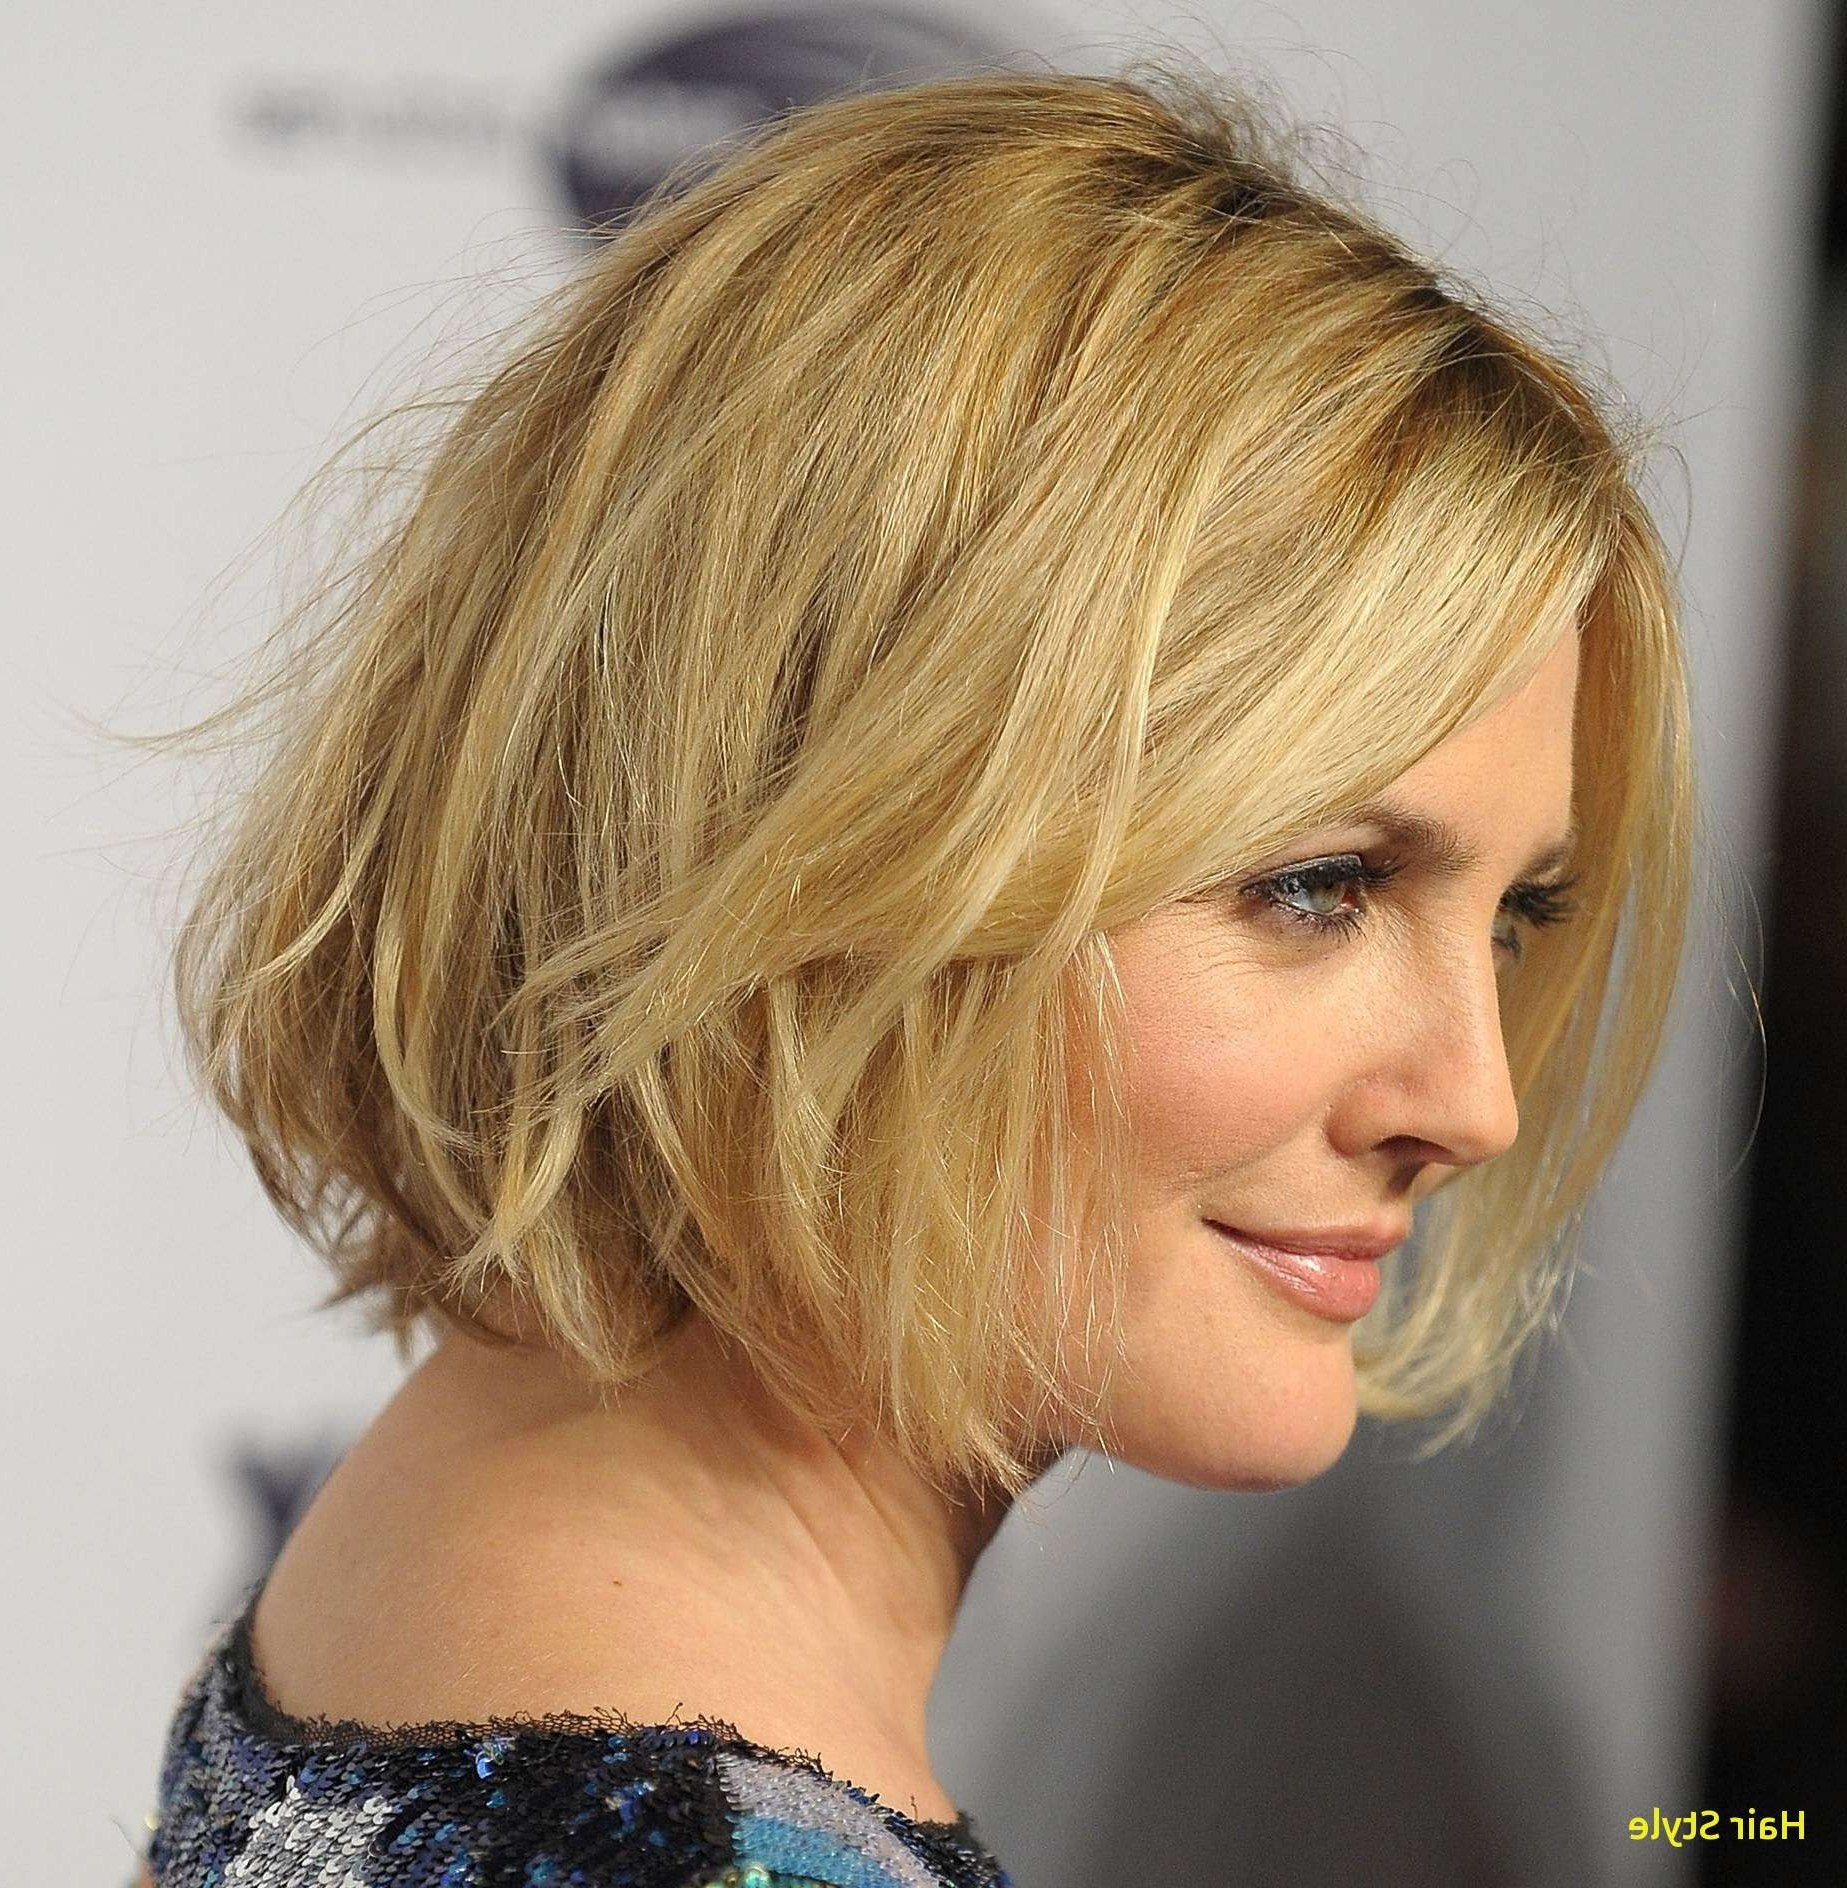 Short To Mid Length Hairstyles Inspirational Unique Hairstyles For With Regard To Kristin Cavallari Short Hairstyles (View 11 of 25)